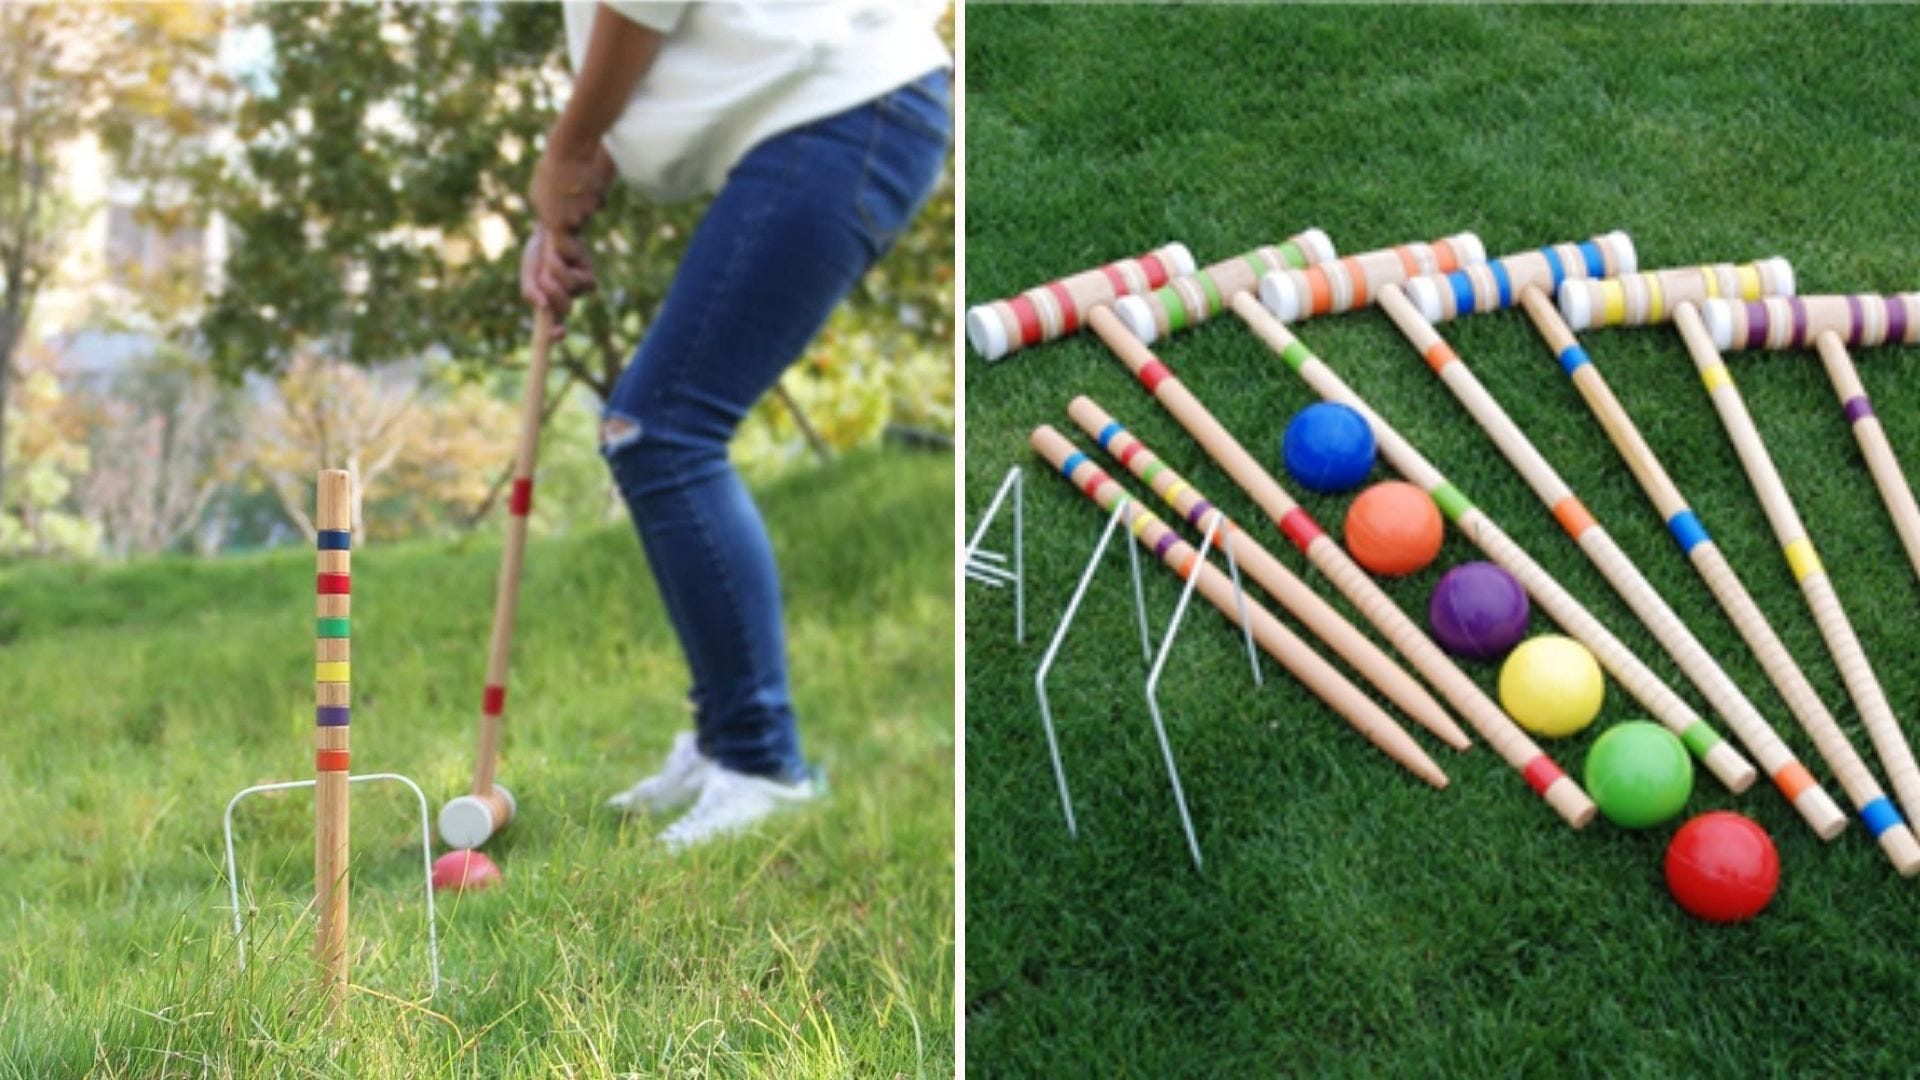 A person playing croquet; a series of croquet mallets and balls